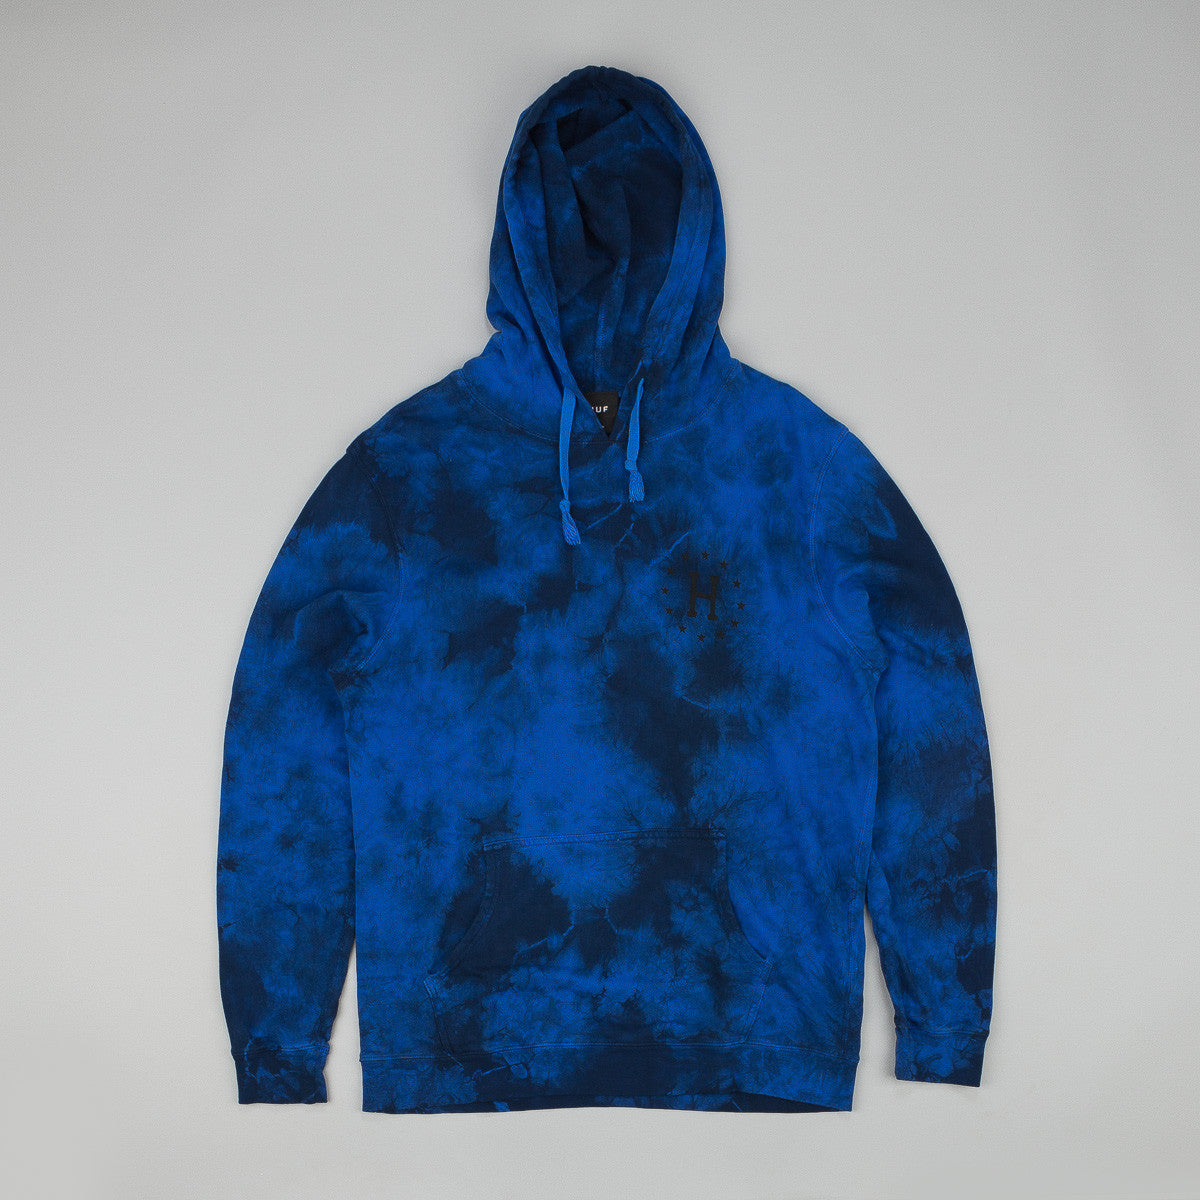 HUF 12 Galaxy Hooded Sweatshirt Royal / Navy